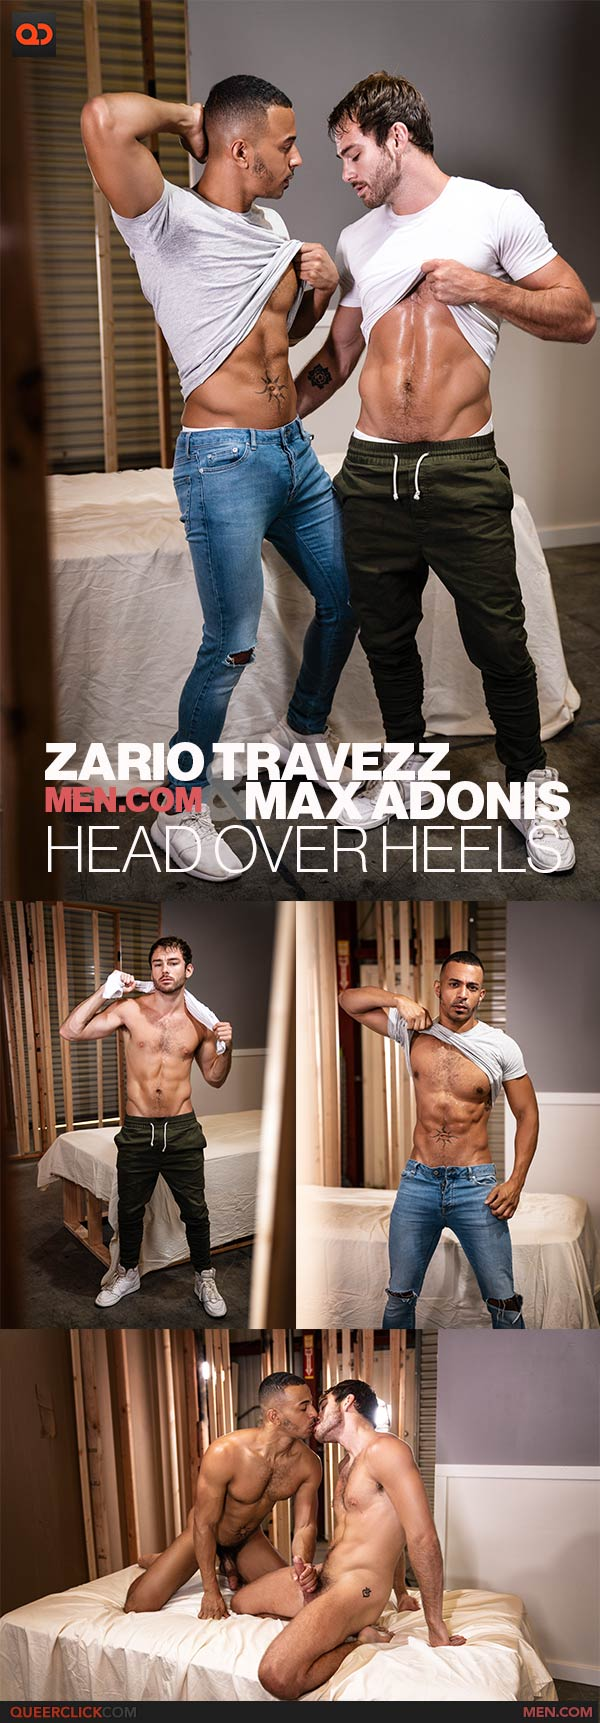 Men.com: Max Adonis and Zario Travezz